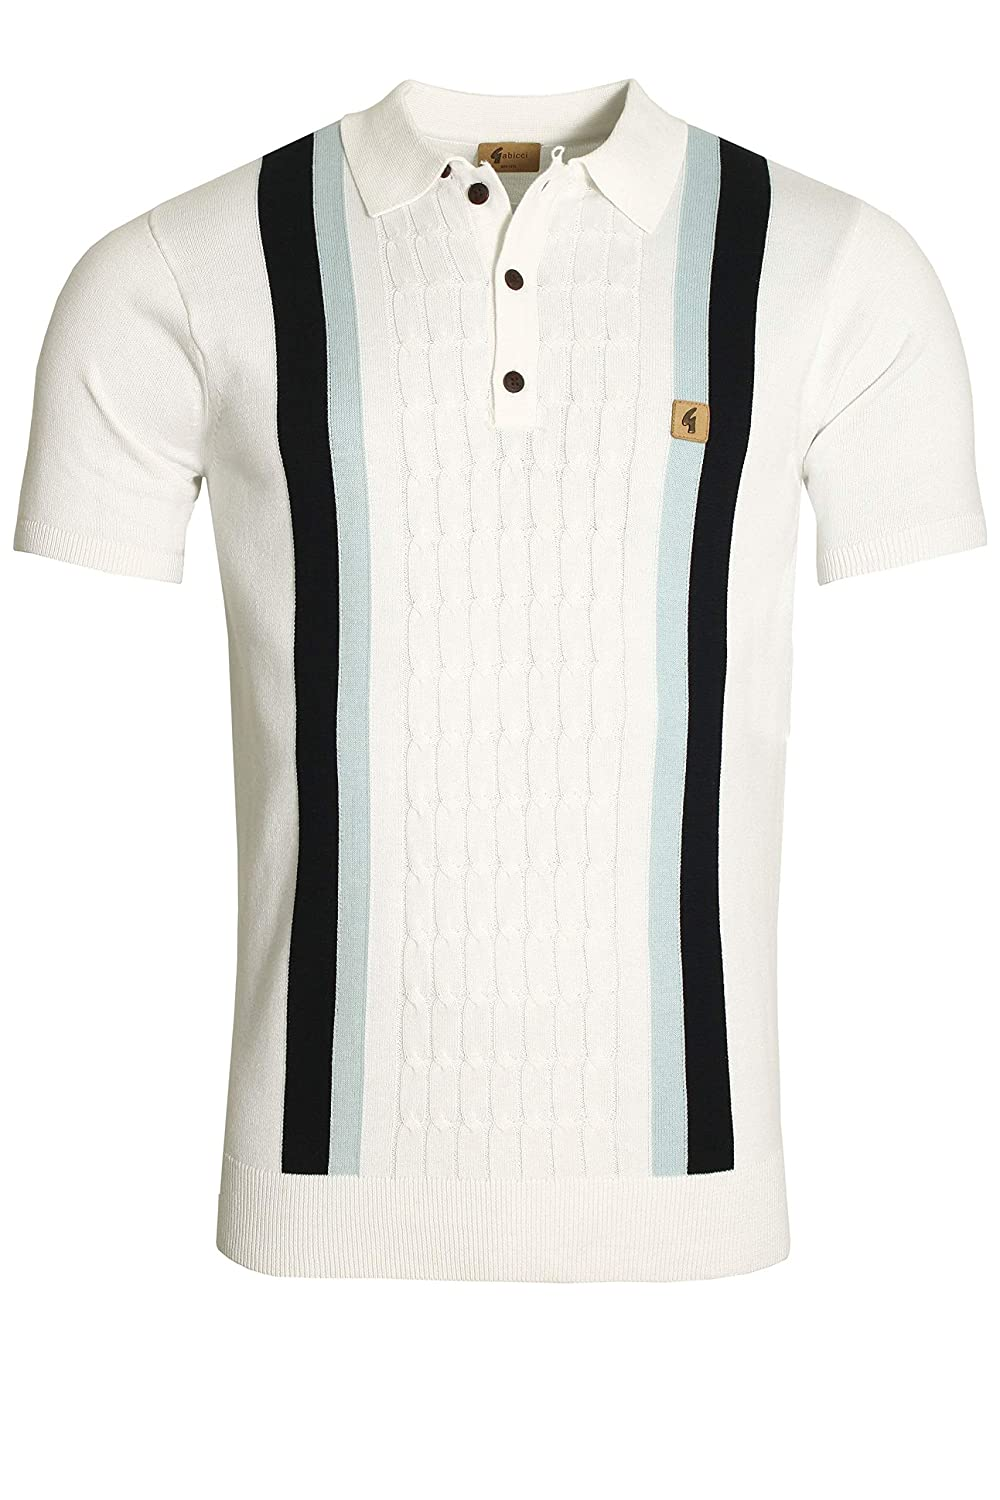 Gabicci Turney Centre Stripe Polo Shirt | White Medium: Amazon.es ...